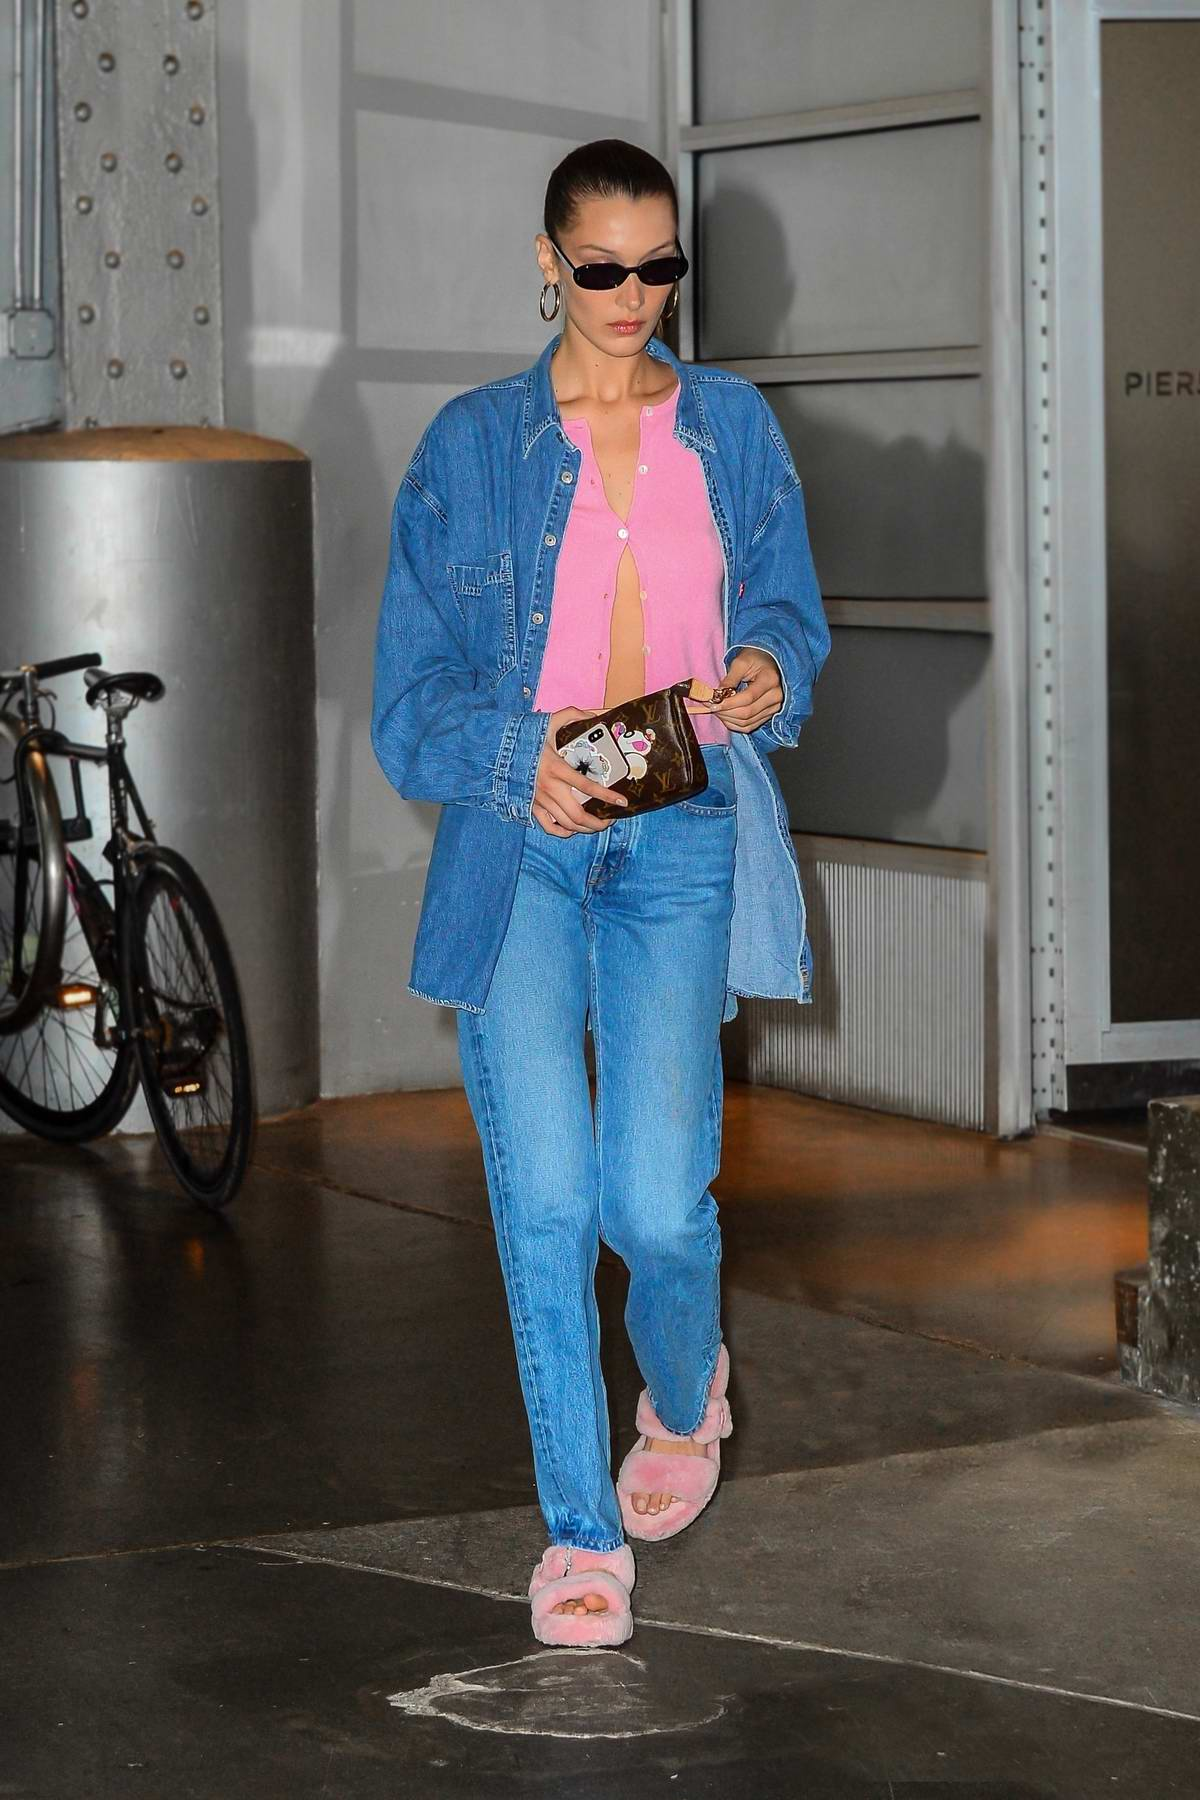 Bella Hadid spotted in double denim as she leaves Pier56 Studios in New York City